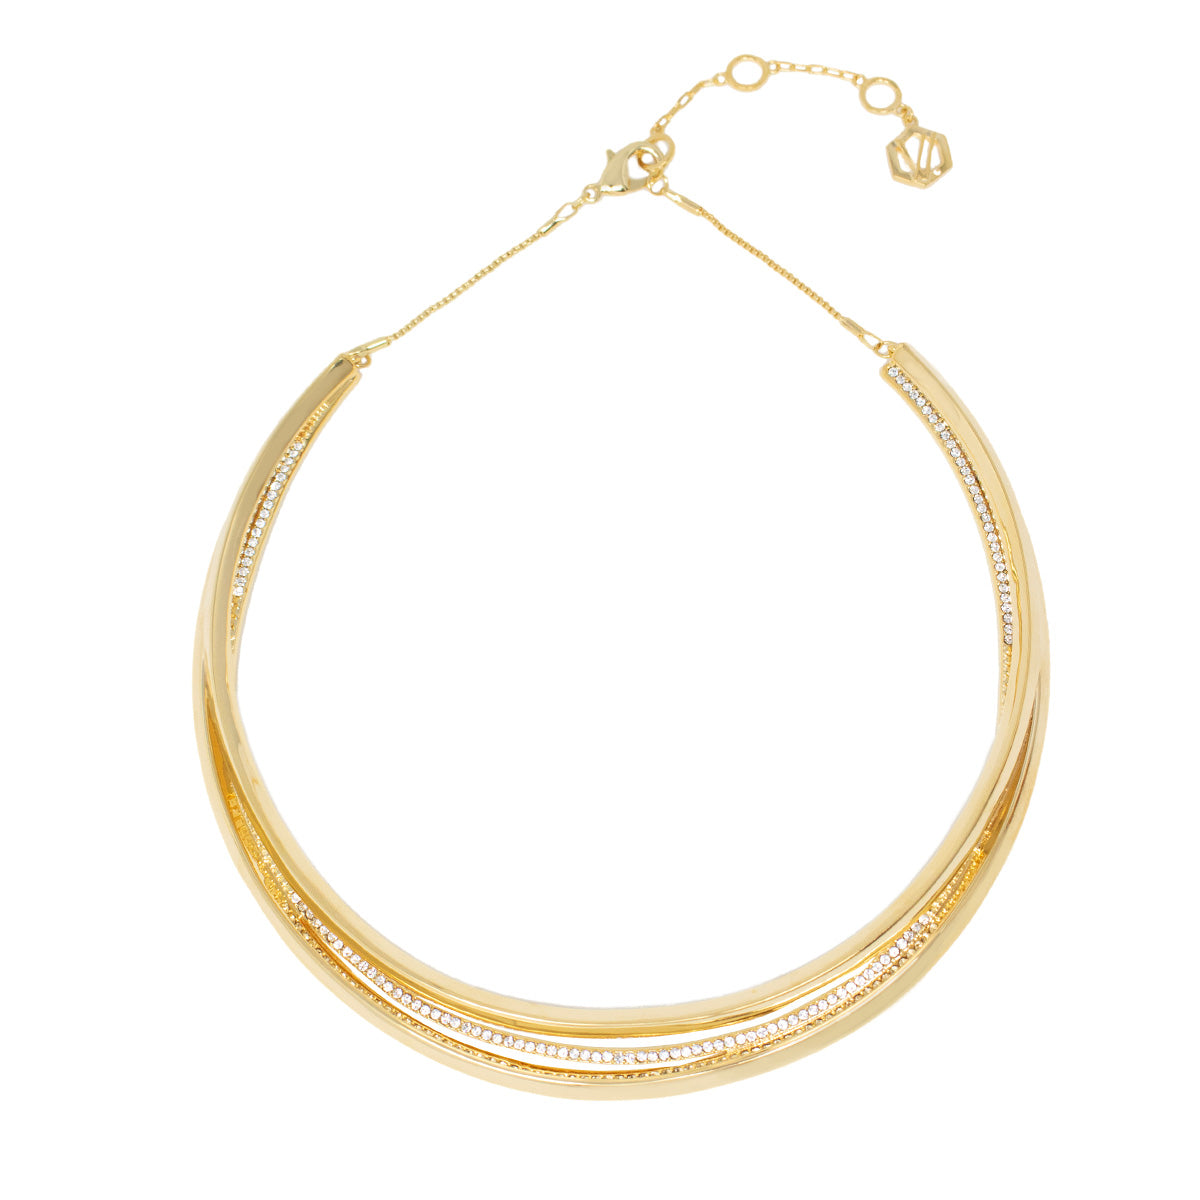 Cira Pave Collar Necklace - Gold